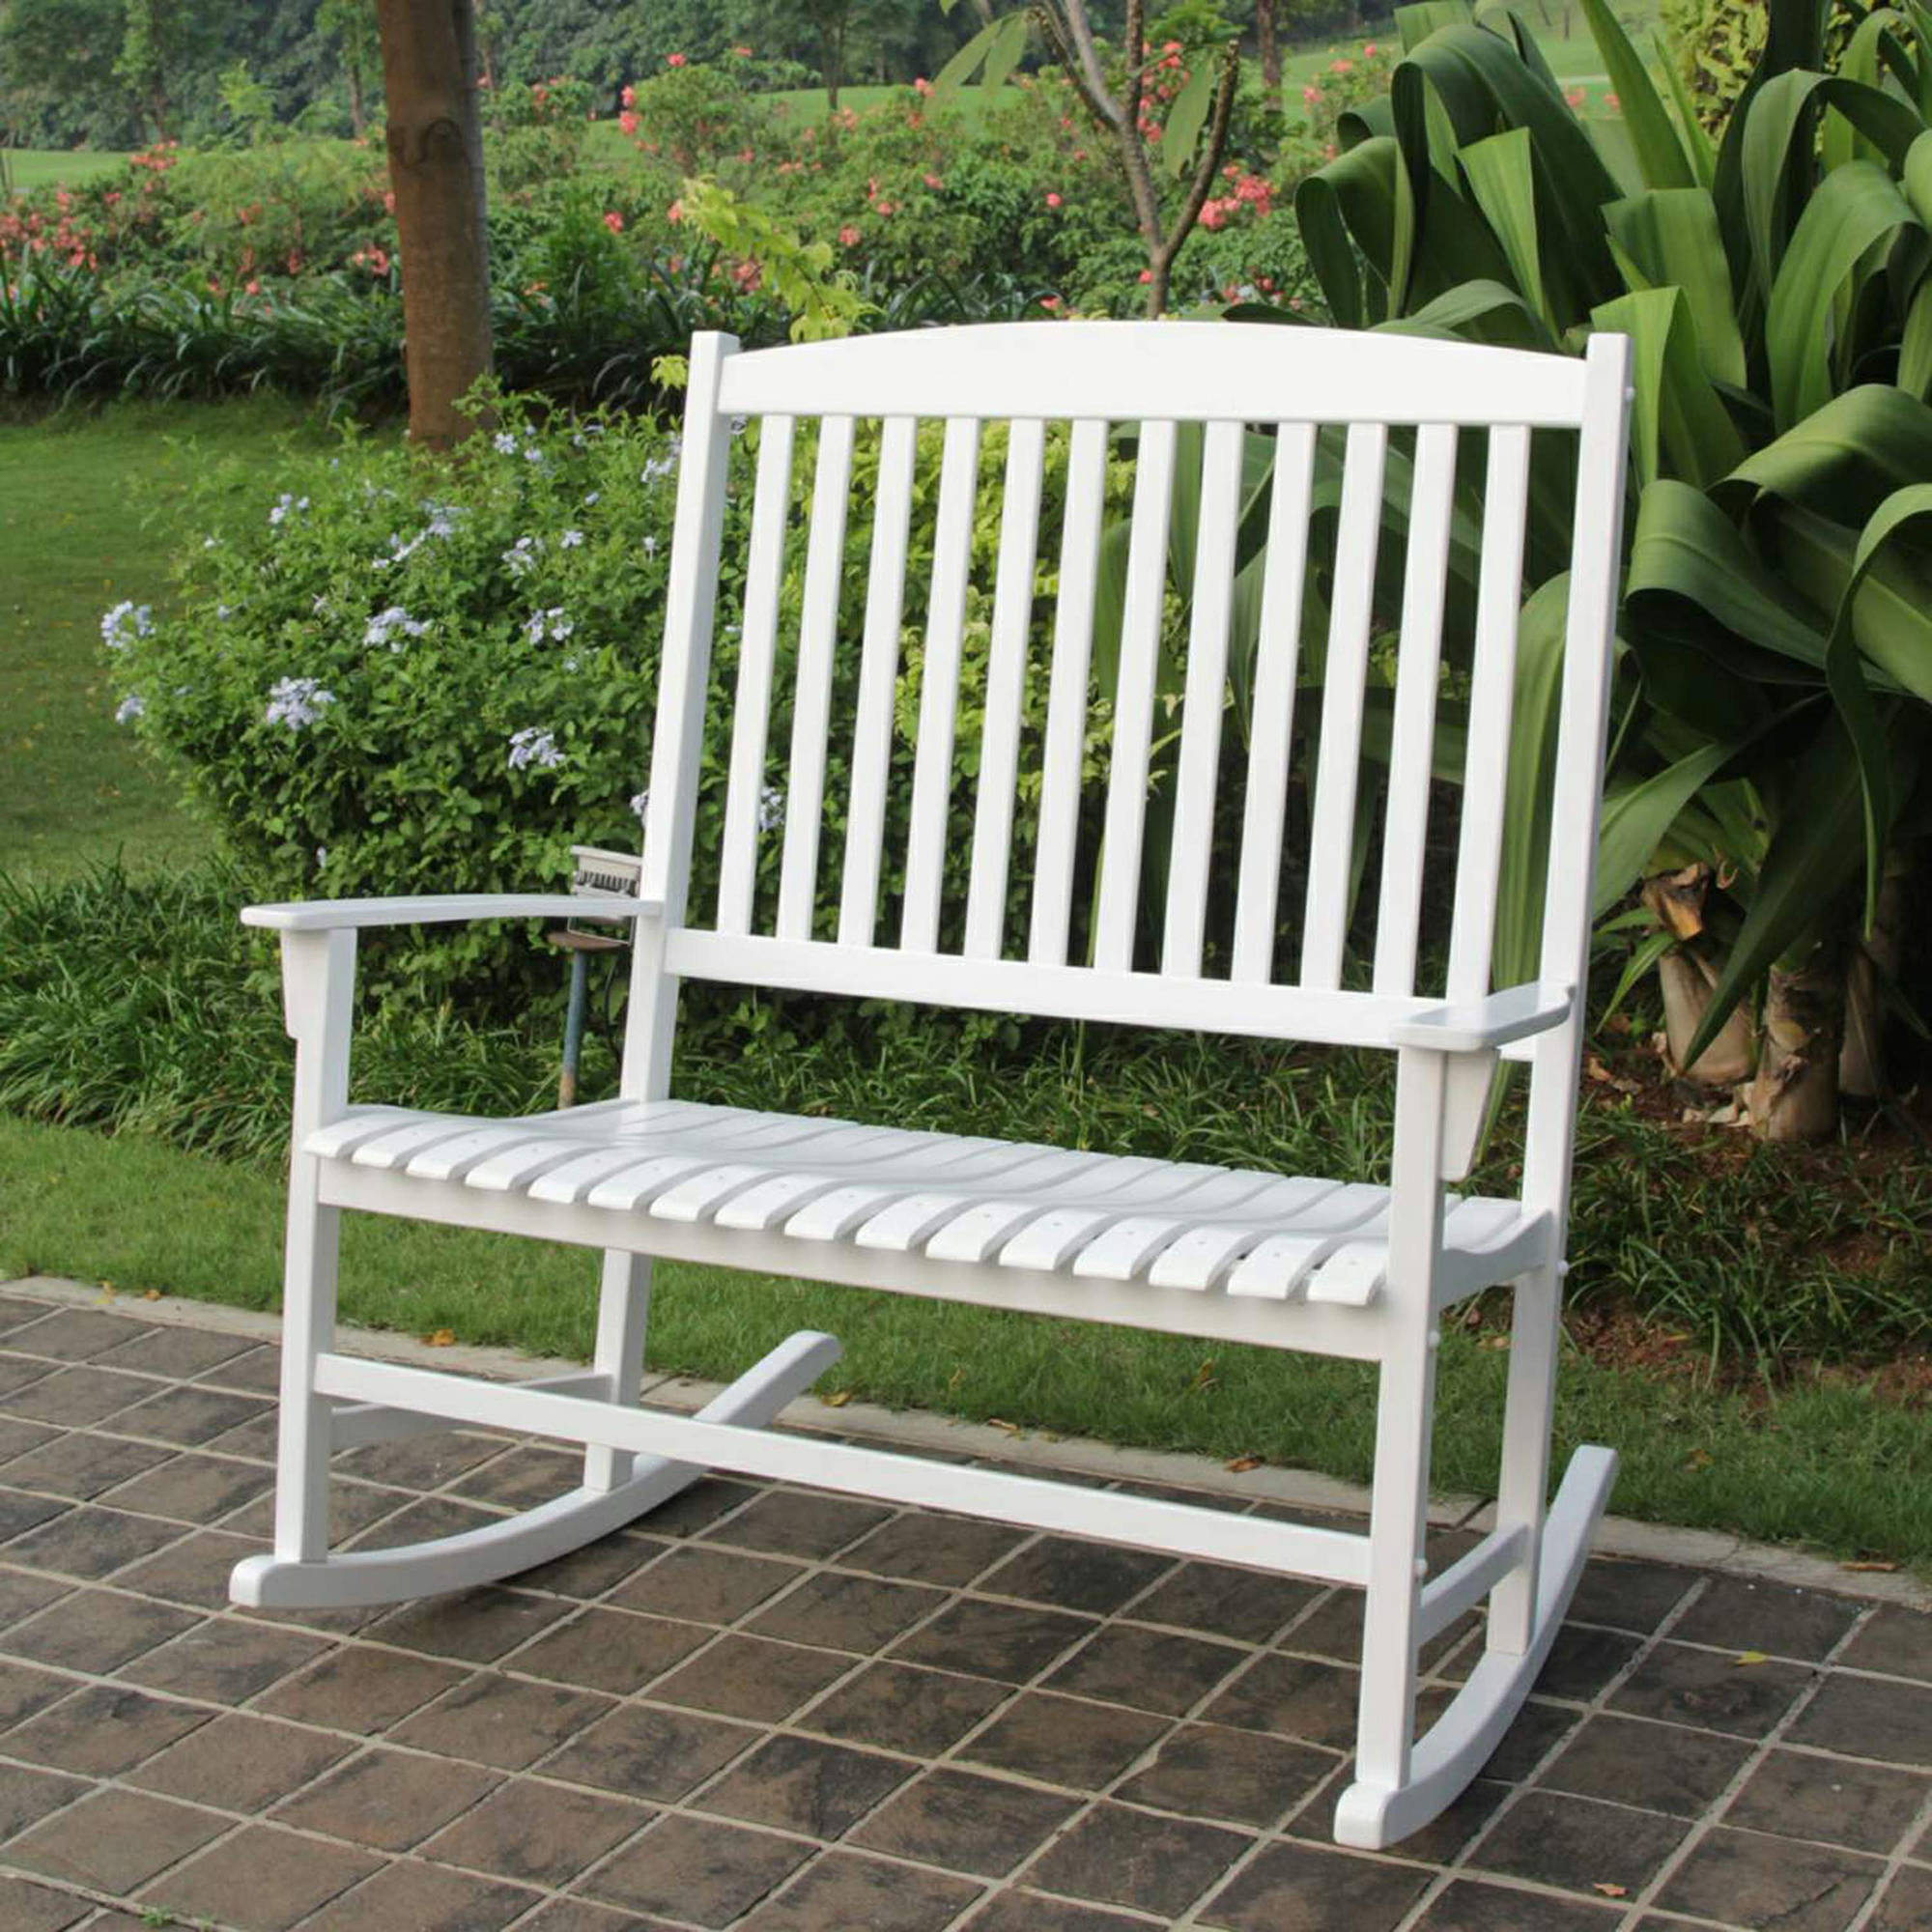 . Mainstays Outdoor Double Rocking Chair  White  Seats 2   Walmart com